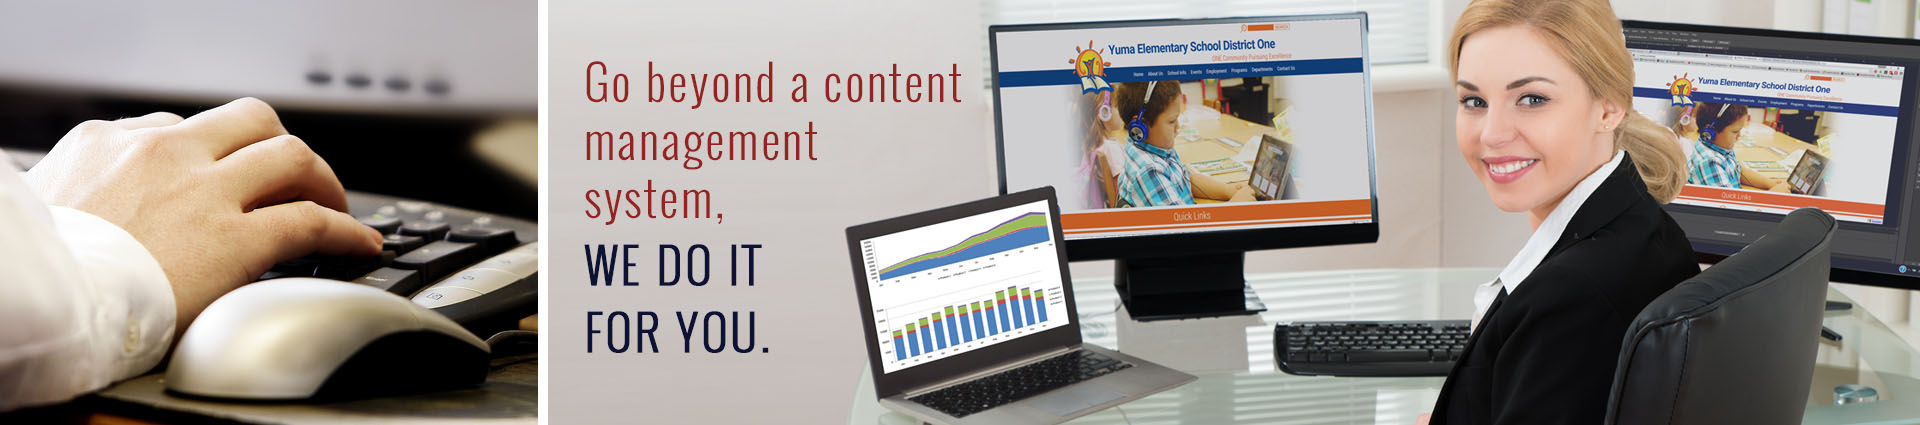 Go beyond a content management system